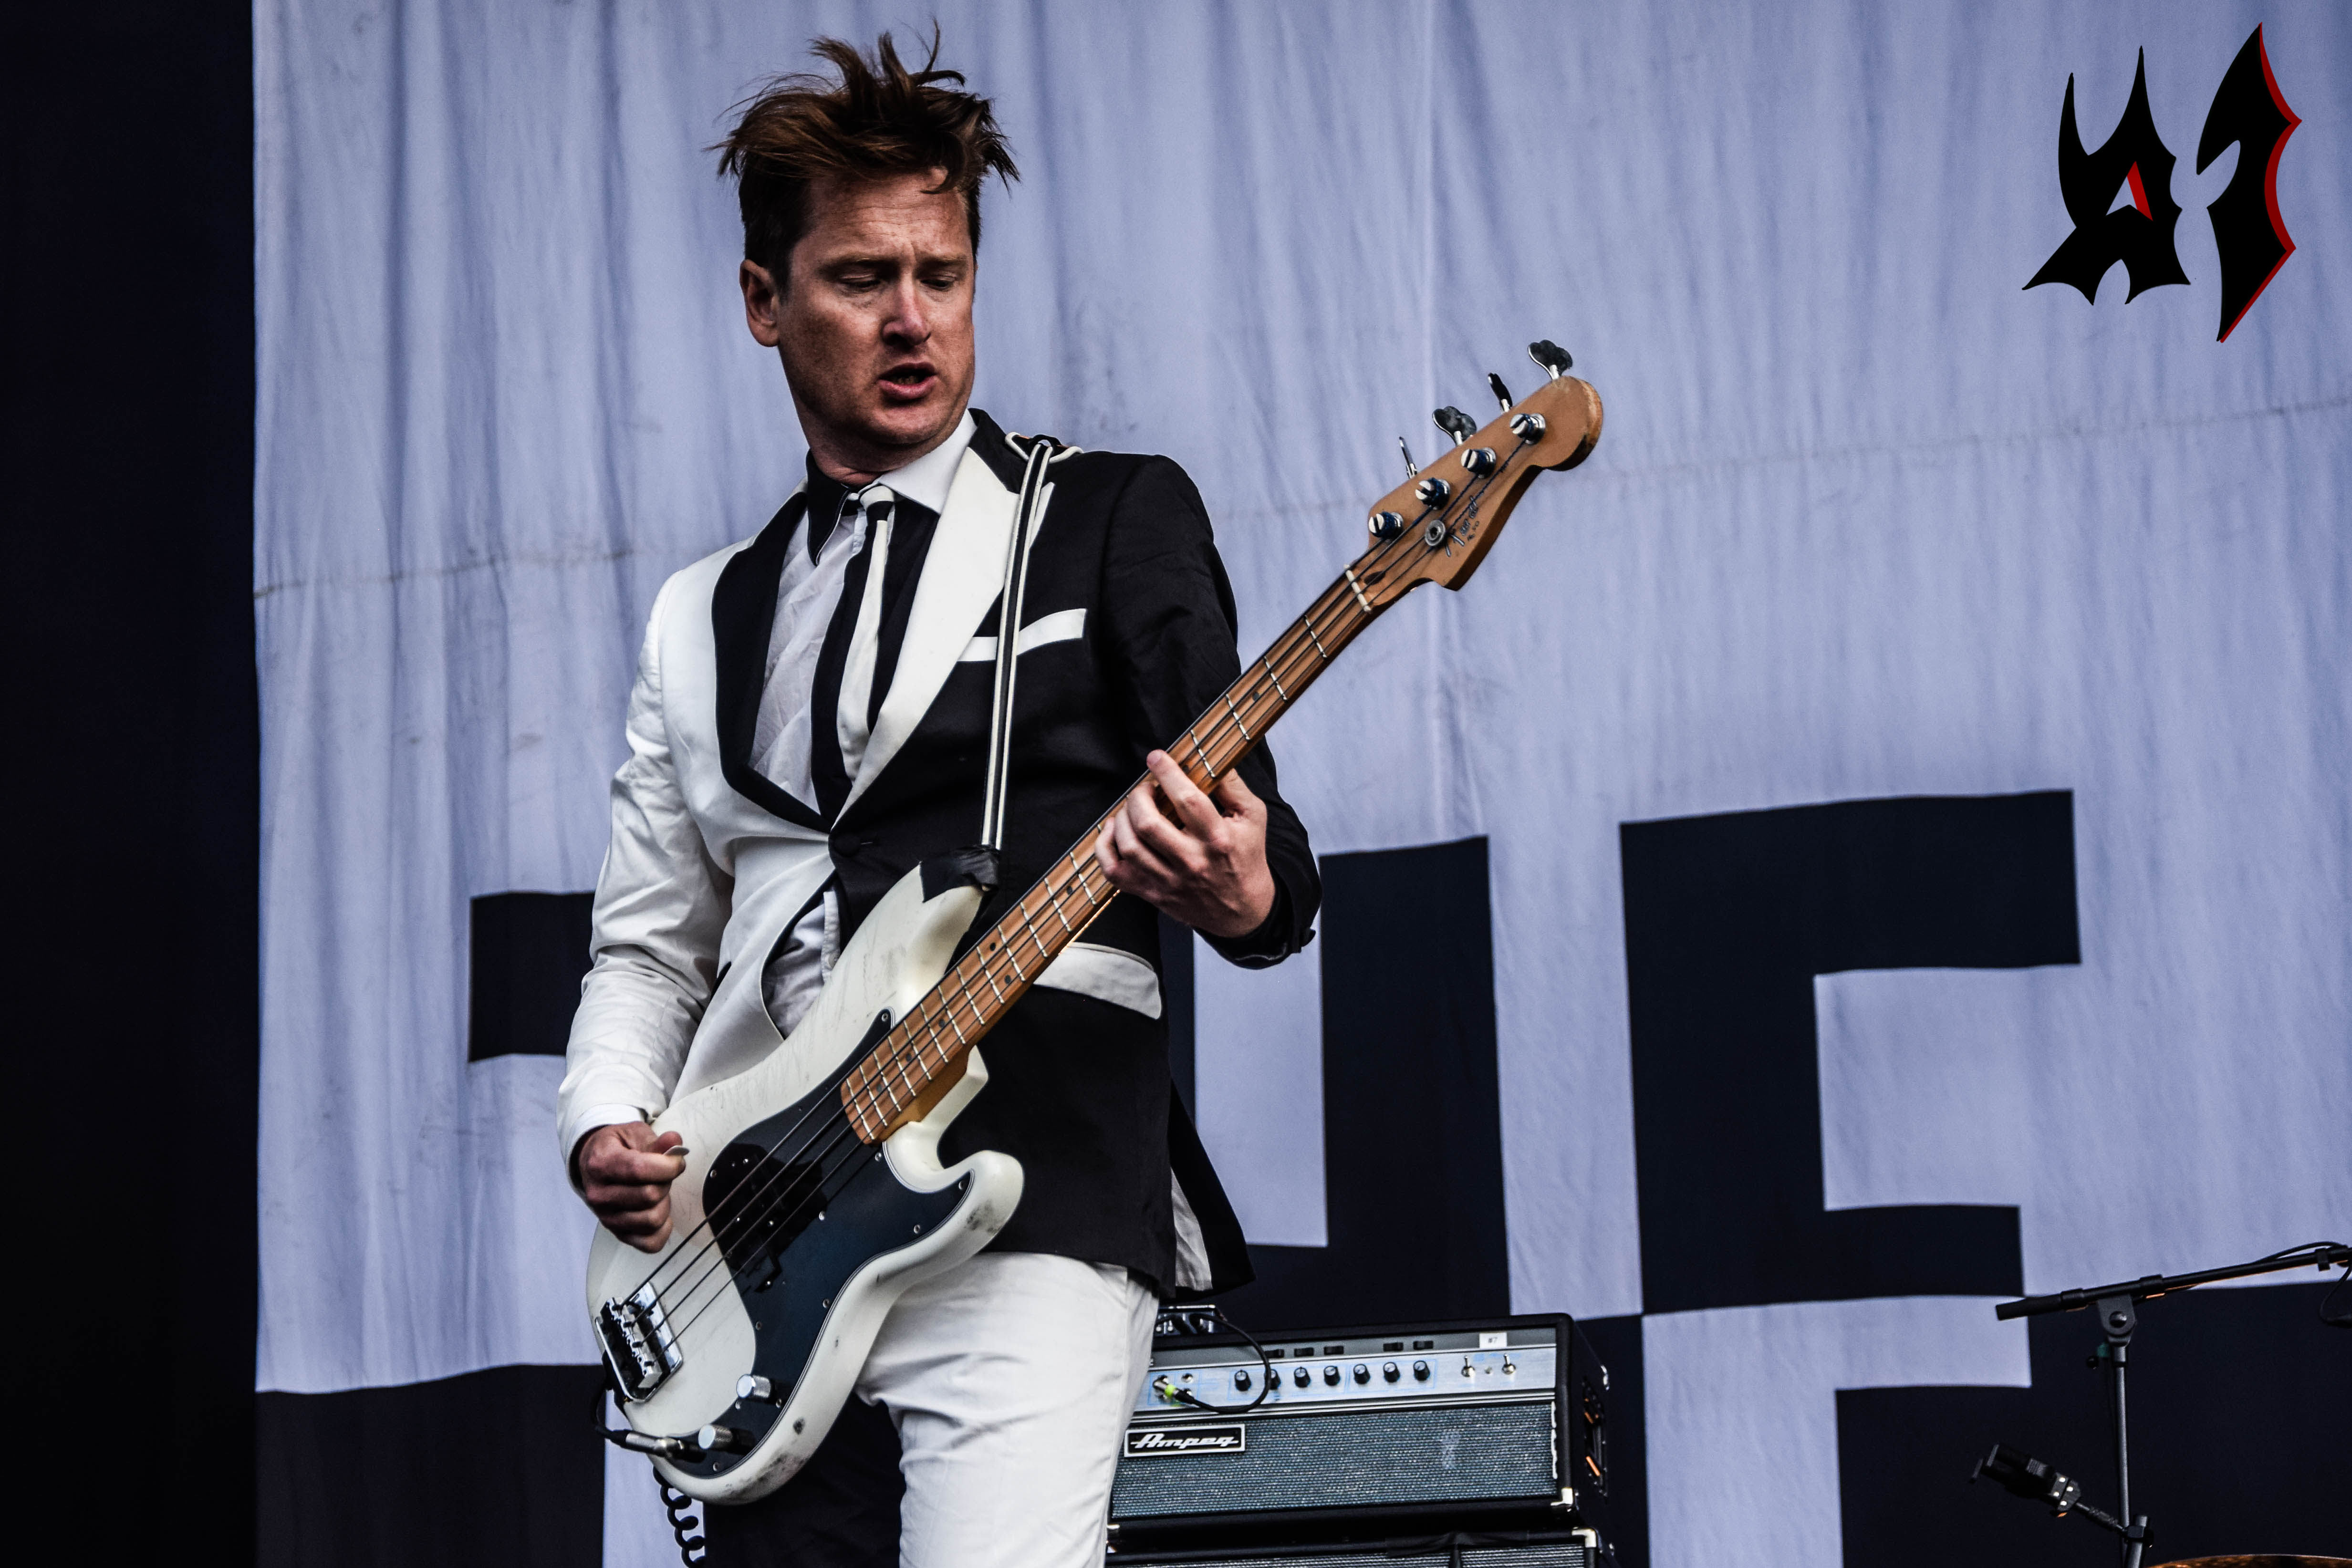 Donwload 2018 – Day 3 - The Hives 6